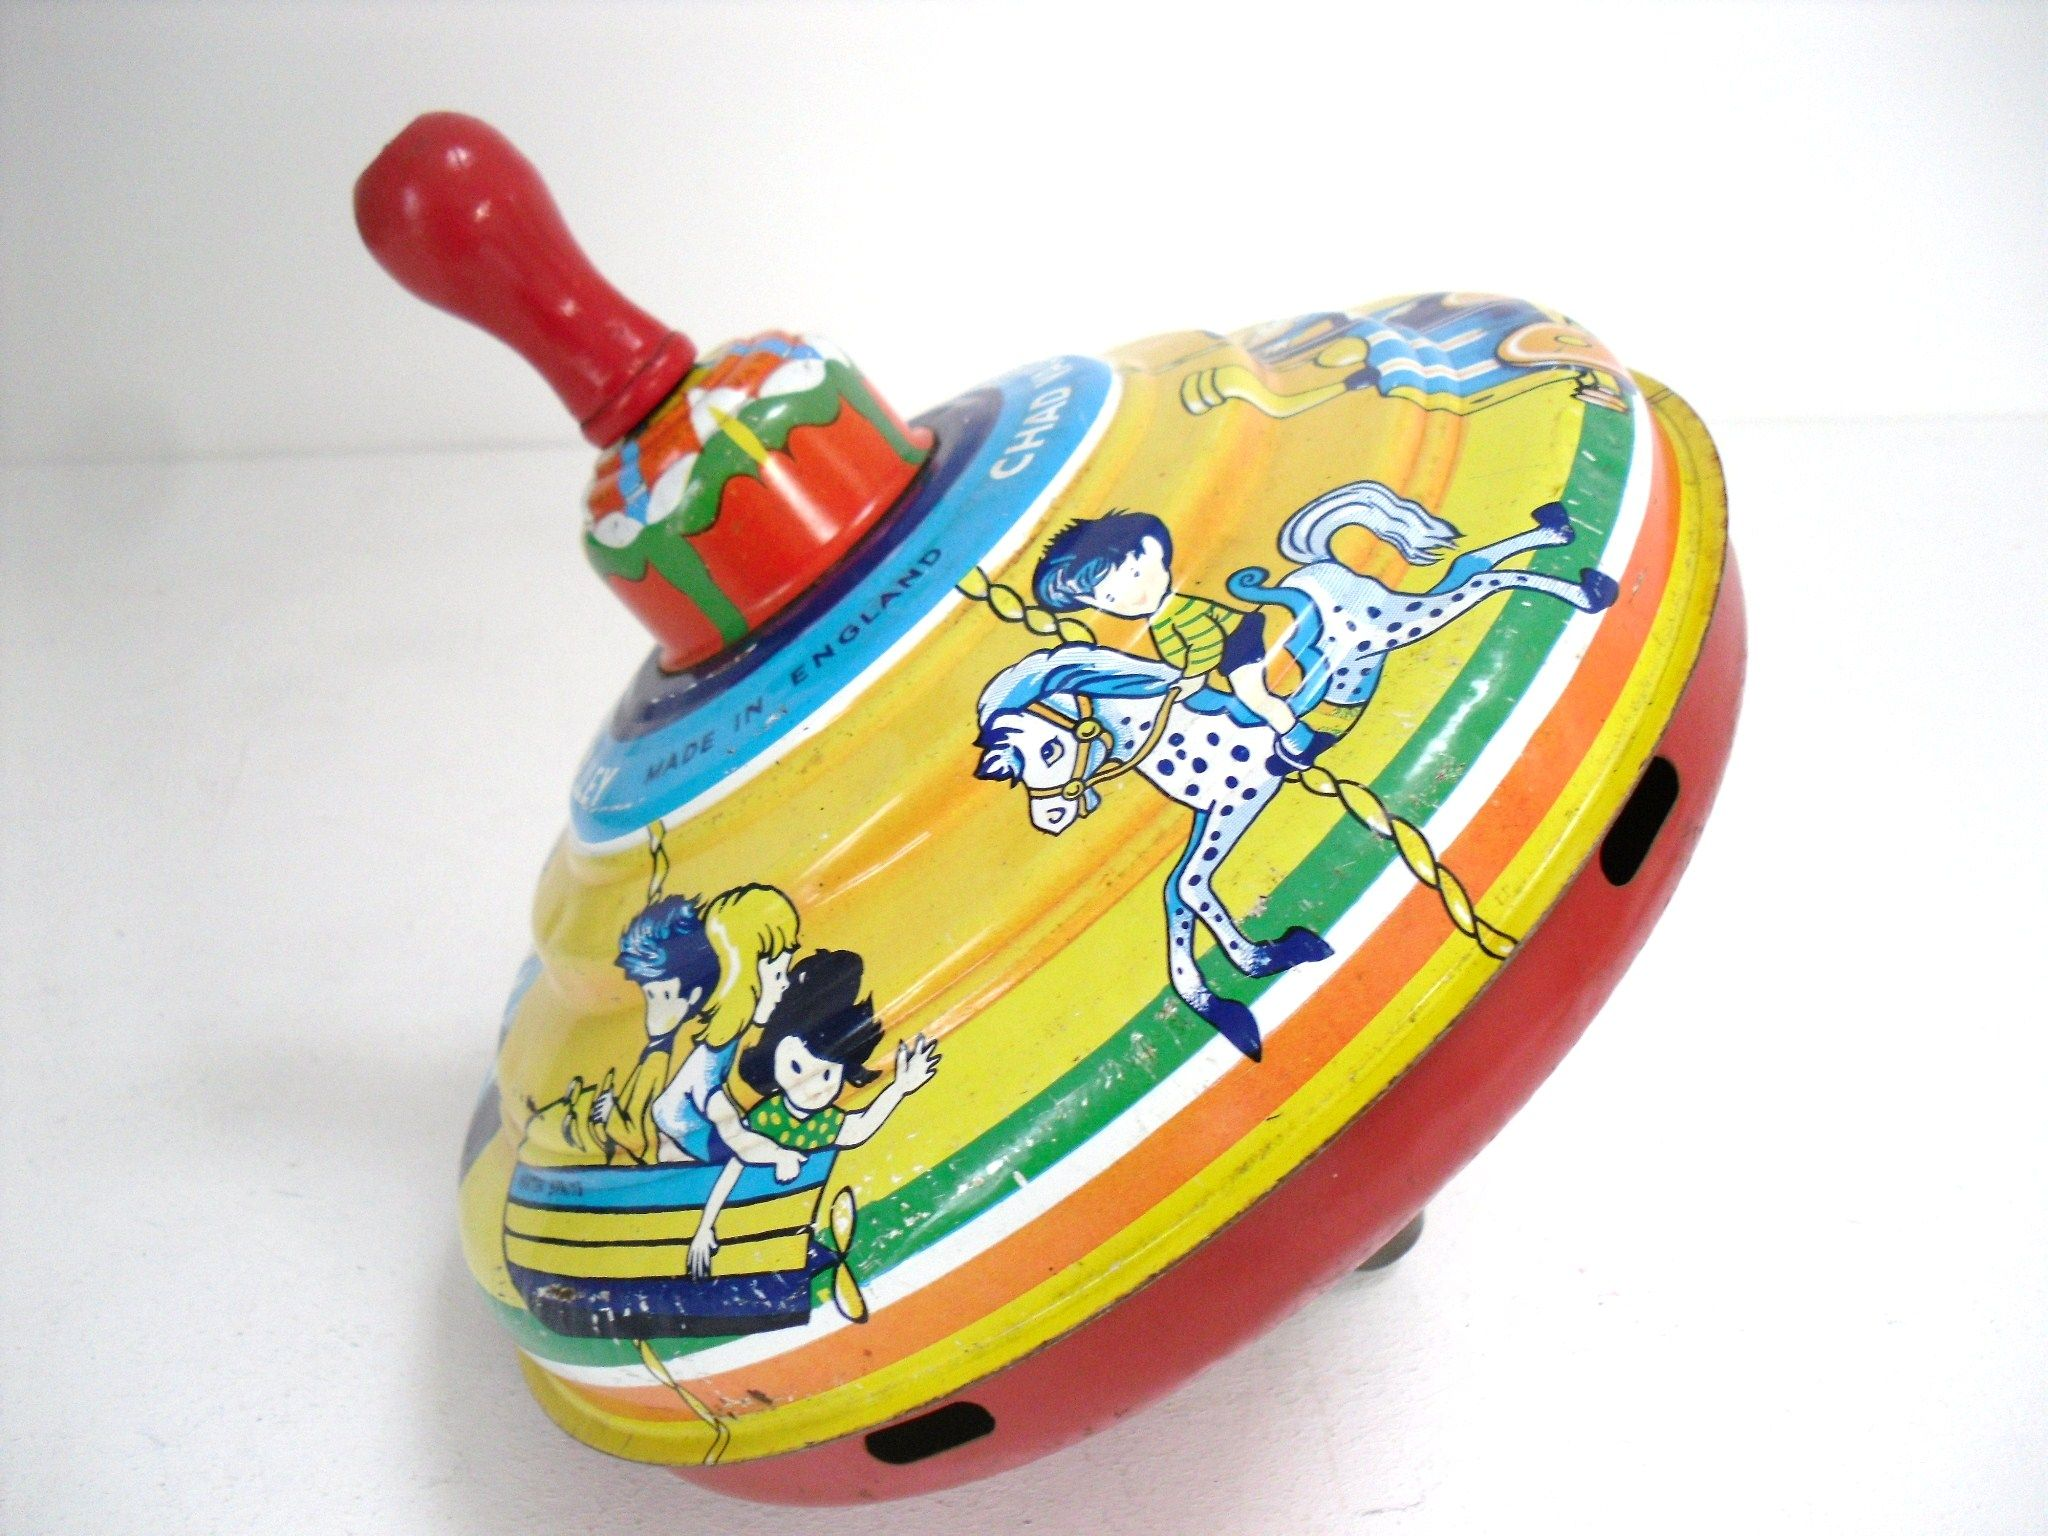 Toys From The 60s : Popular toys of the s in toy factories were